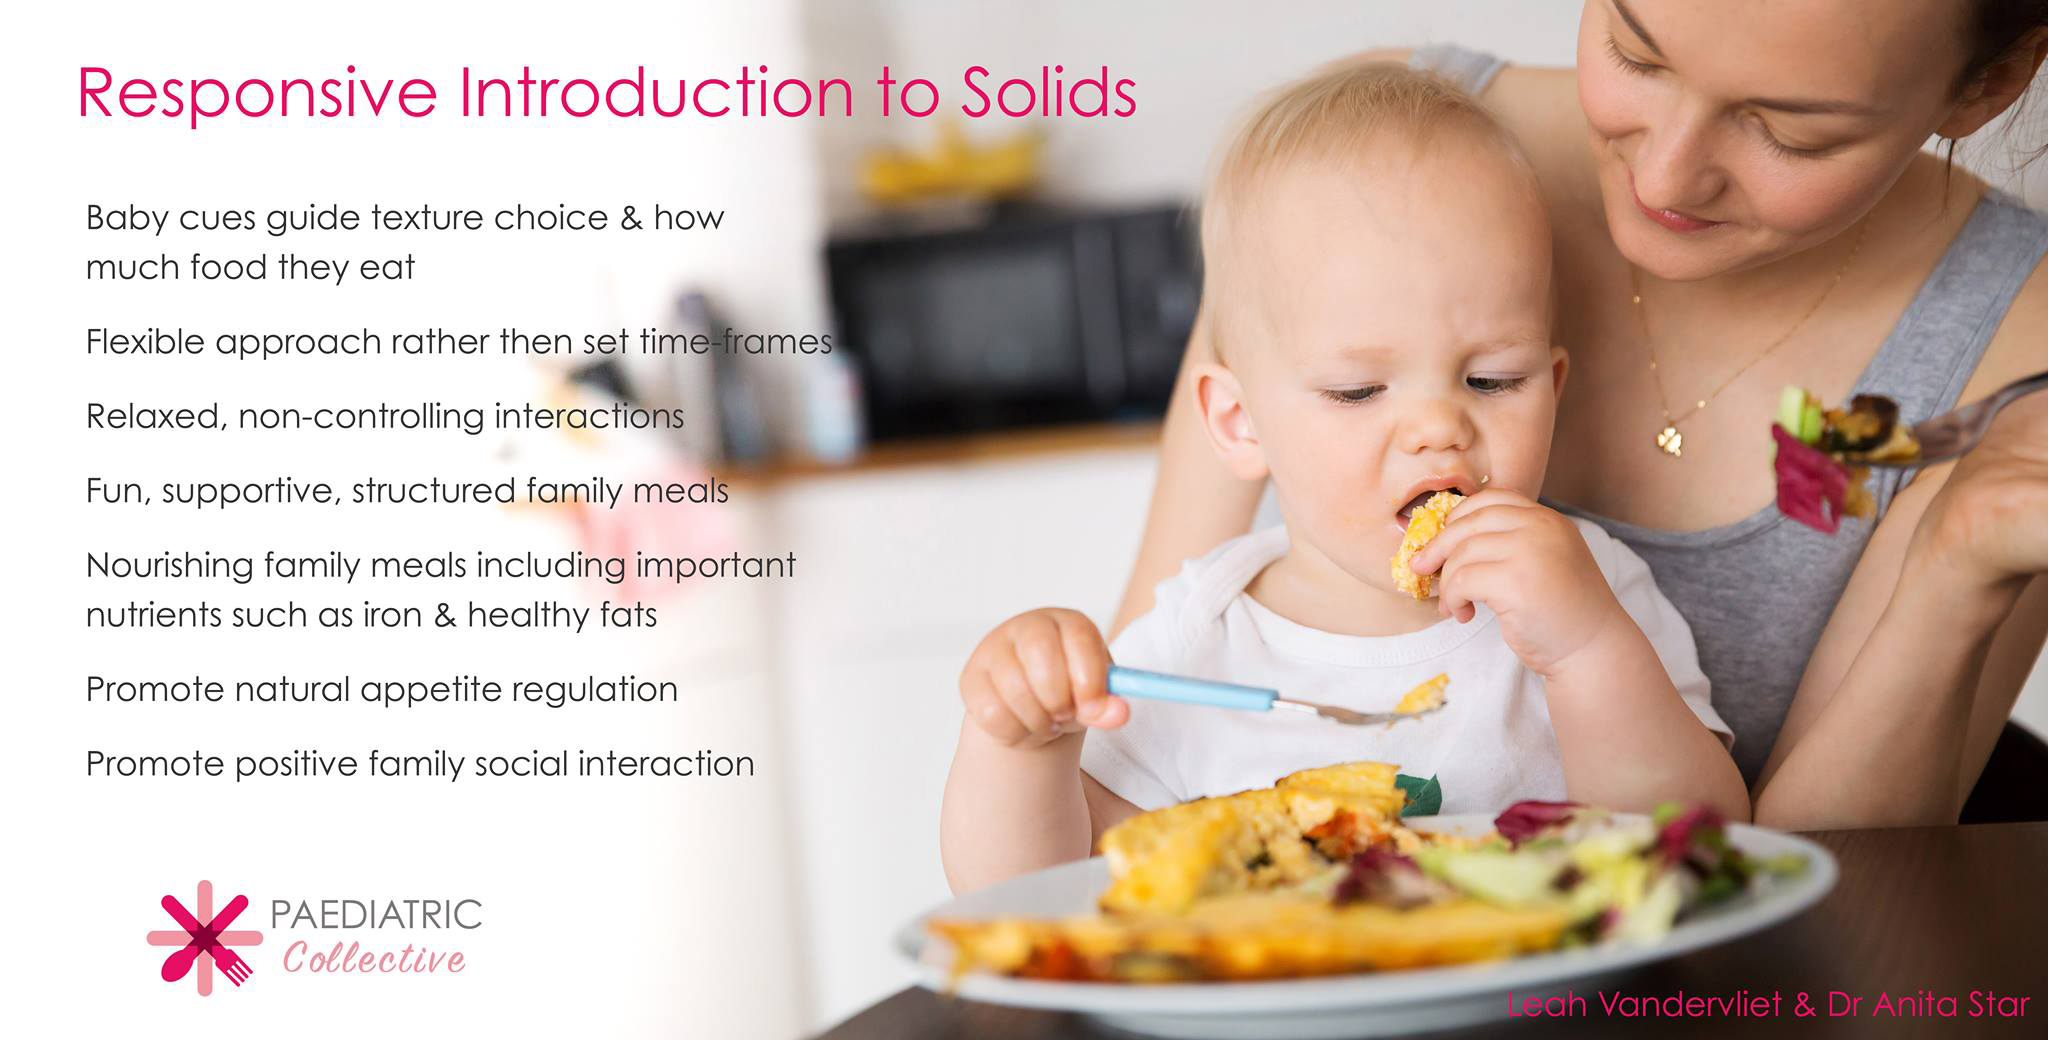 responsive introduction to solids meme